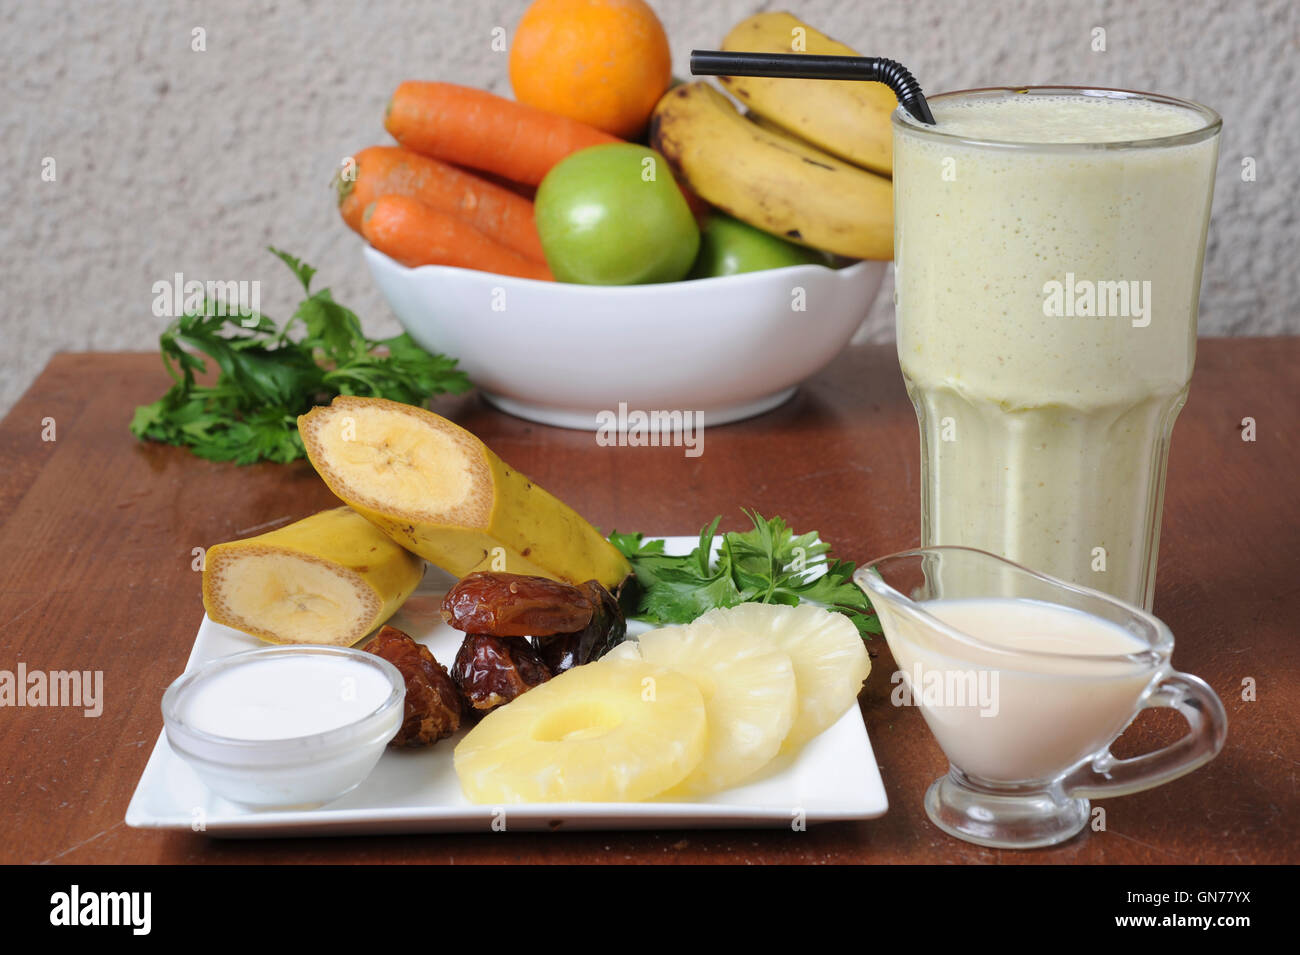 Organic Health Food meal. Fruit, vegetables and a shake drink - Stock Image